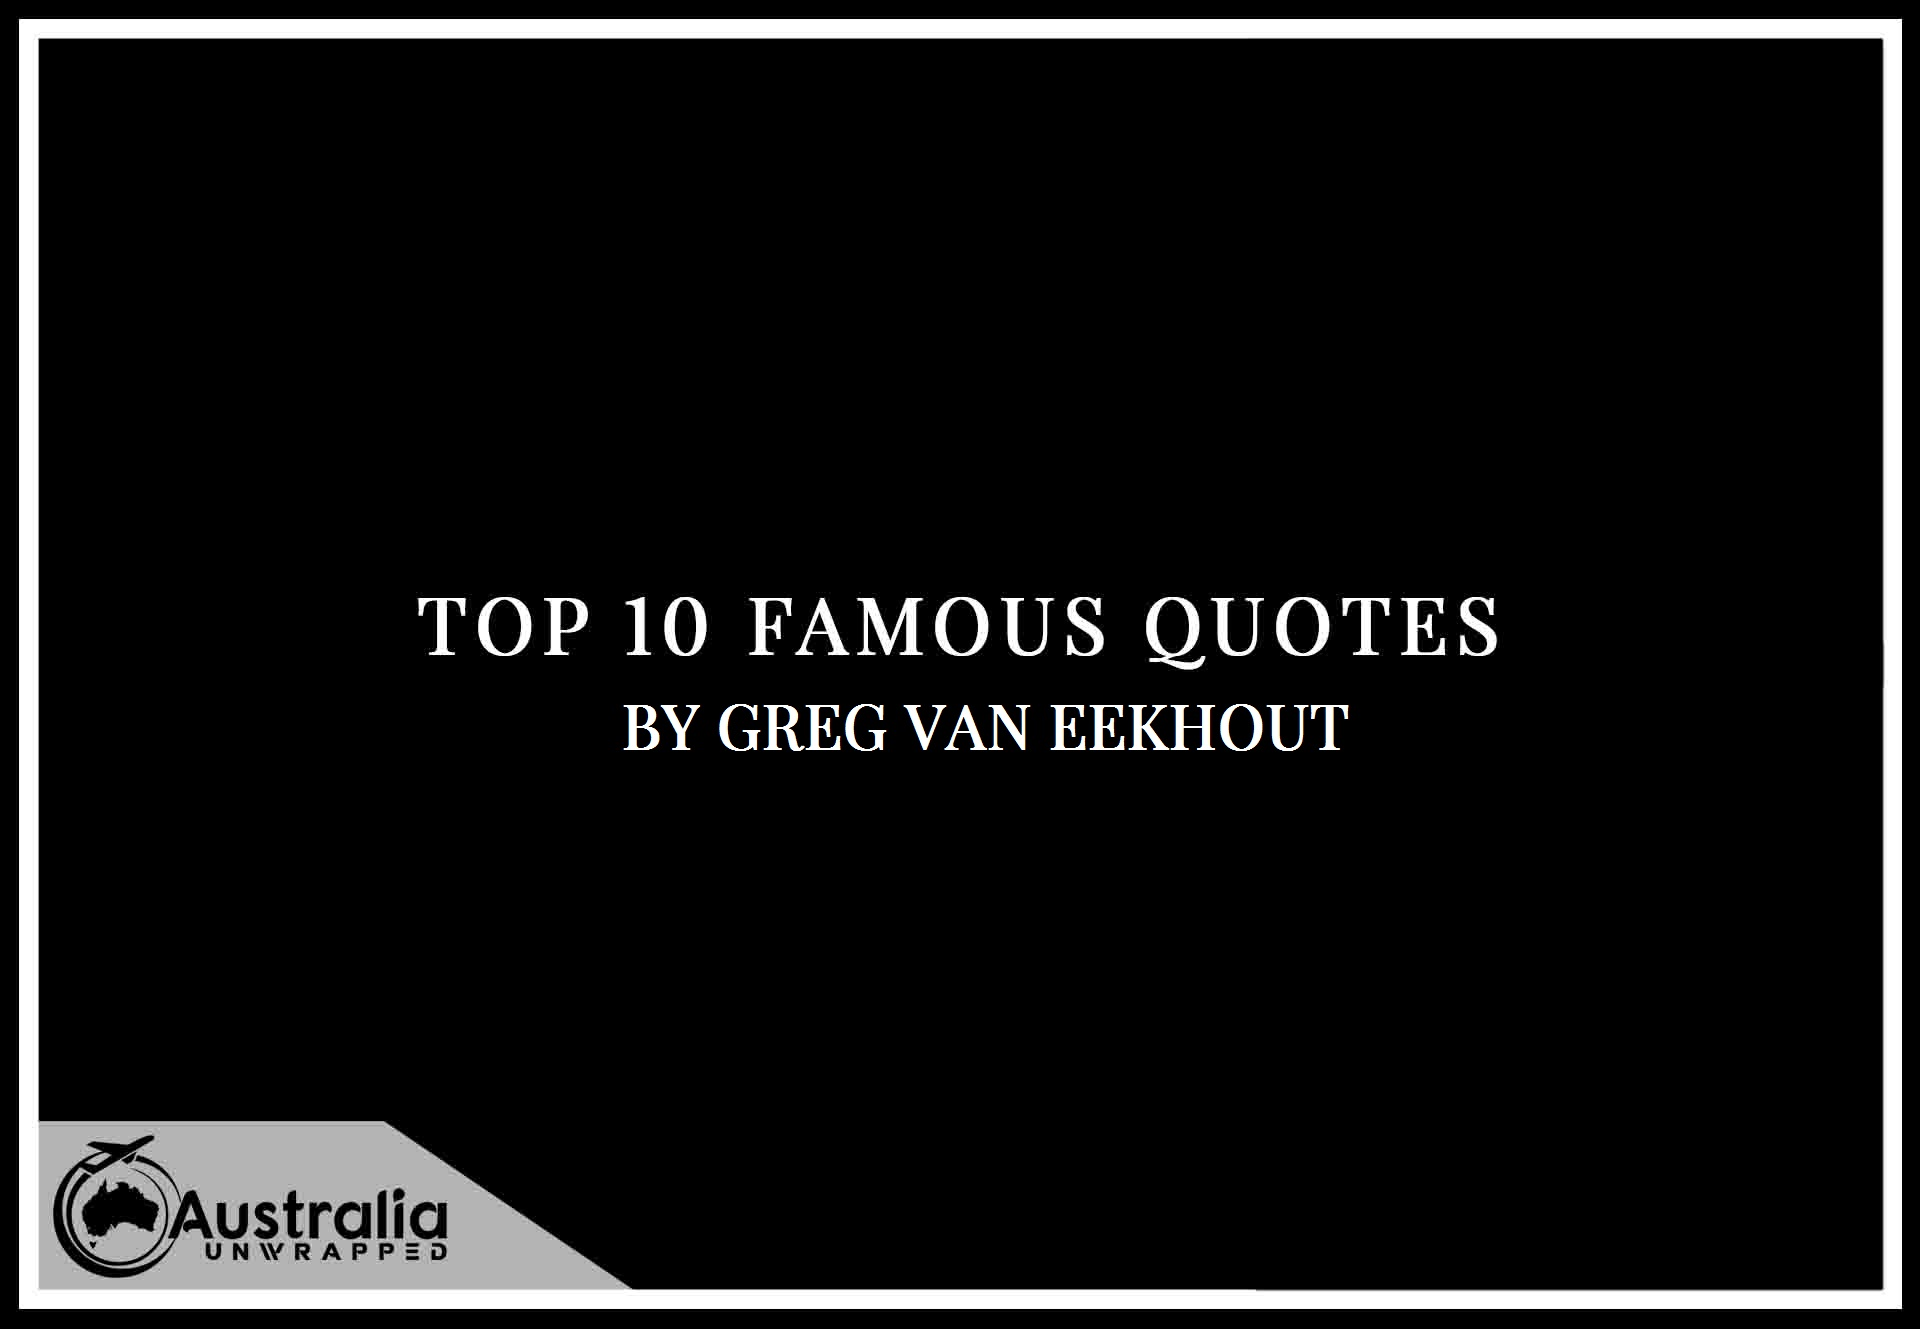 Greg Van Eekhout's Top 10 Popular and Famous Quotes